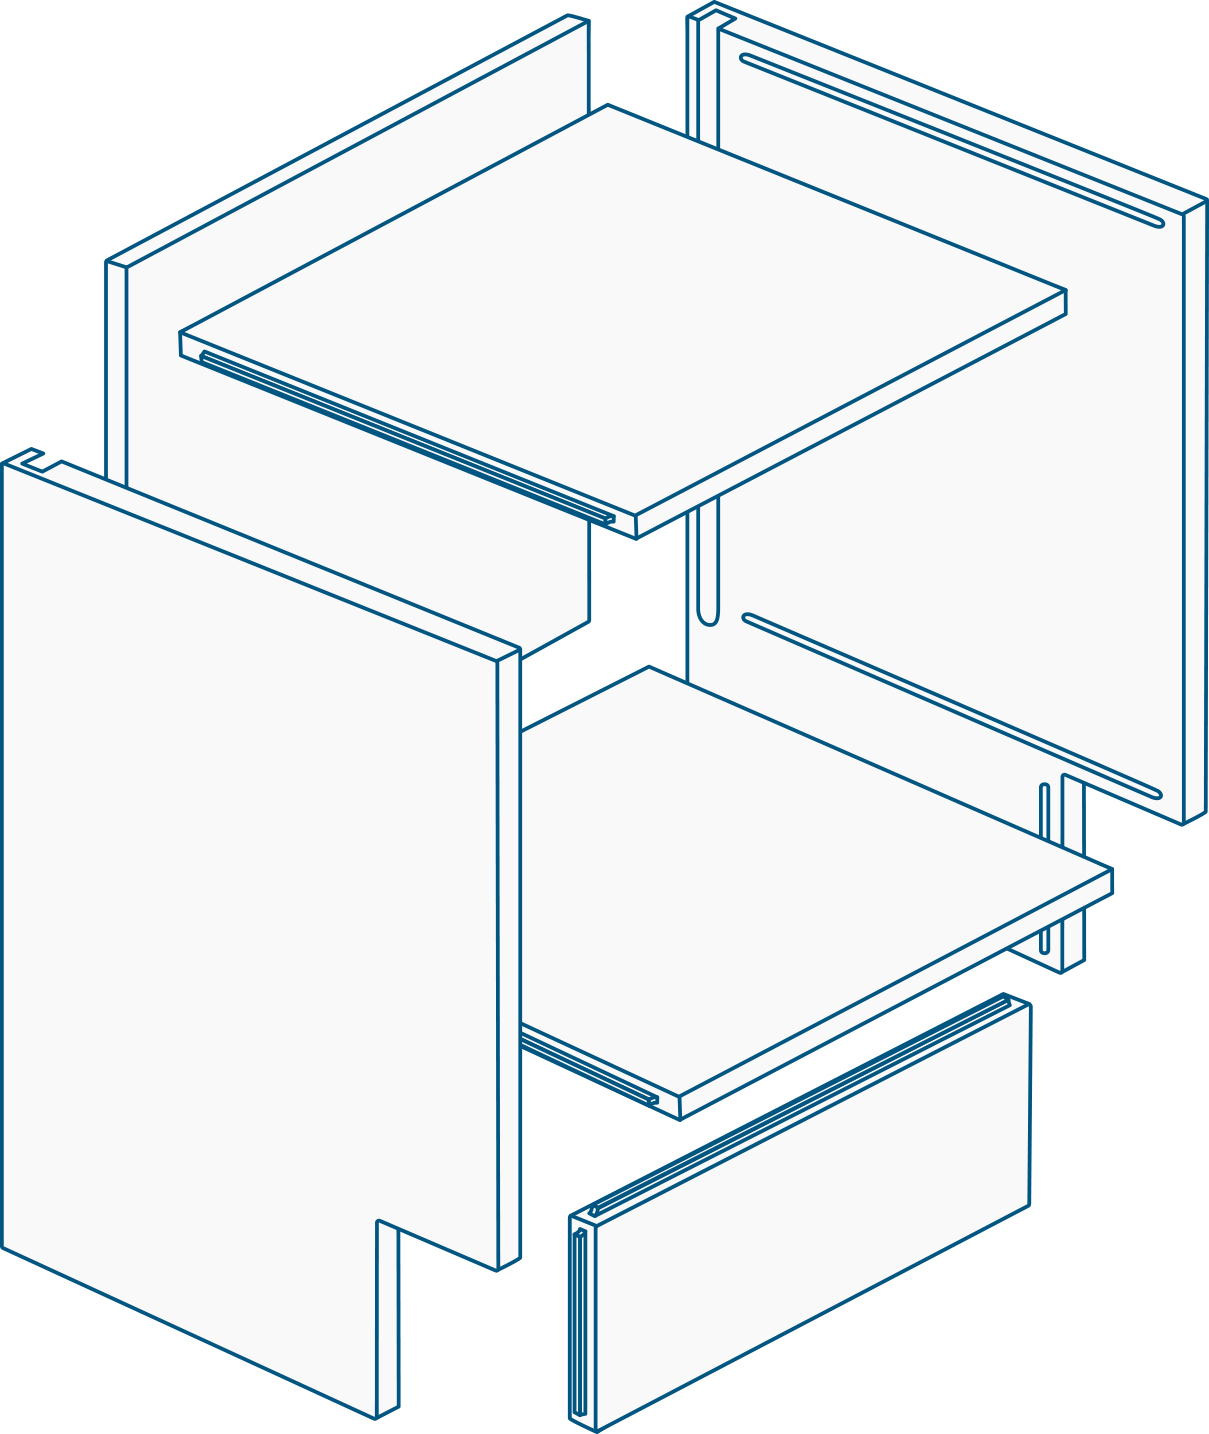 box-expanded1.png